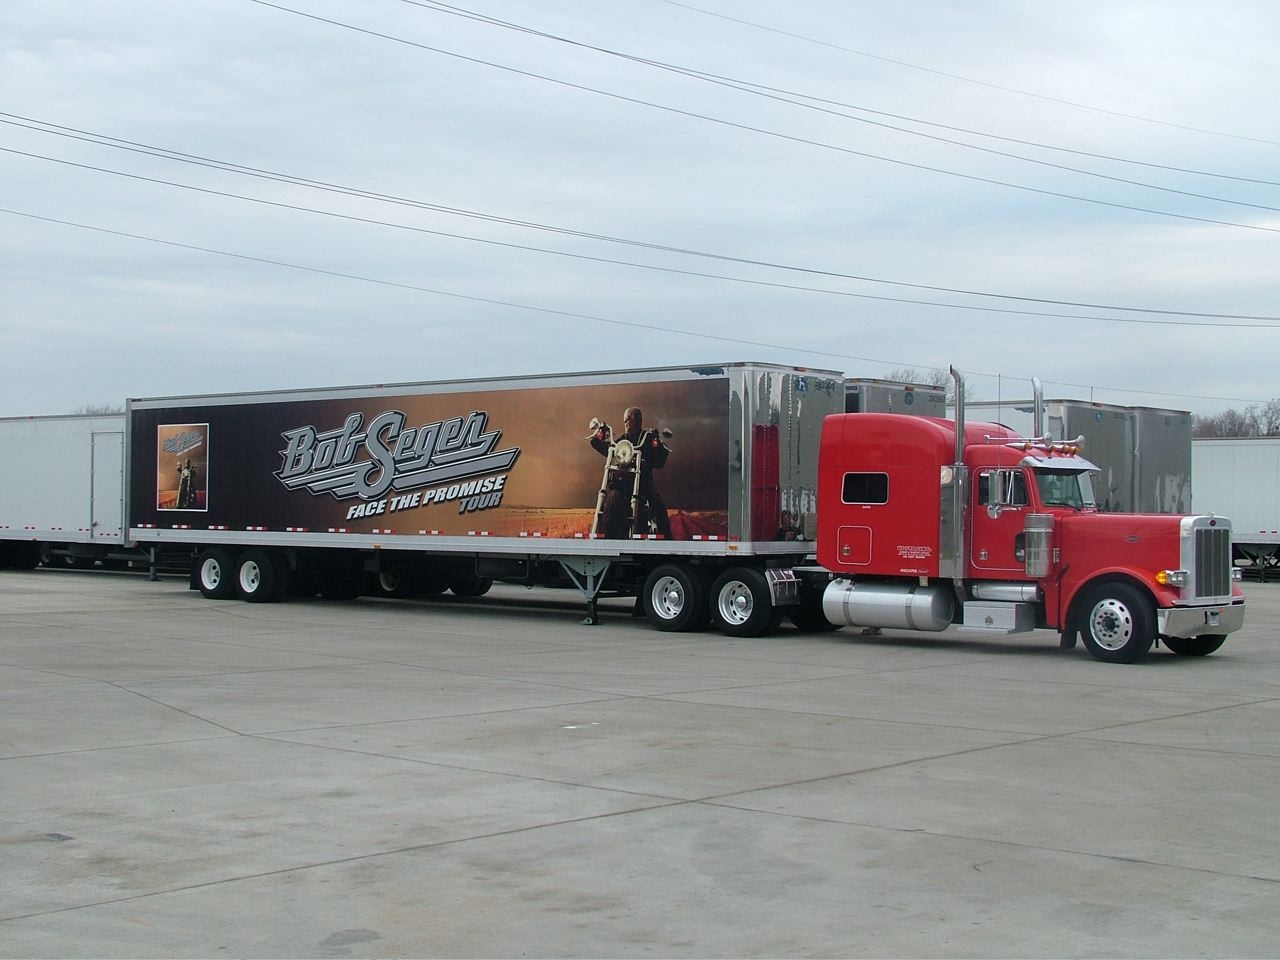 Bob Segar Trailer wrap ft worth texas, dallas texas trailer wraps, best trailer wraps DFW